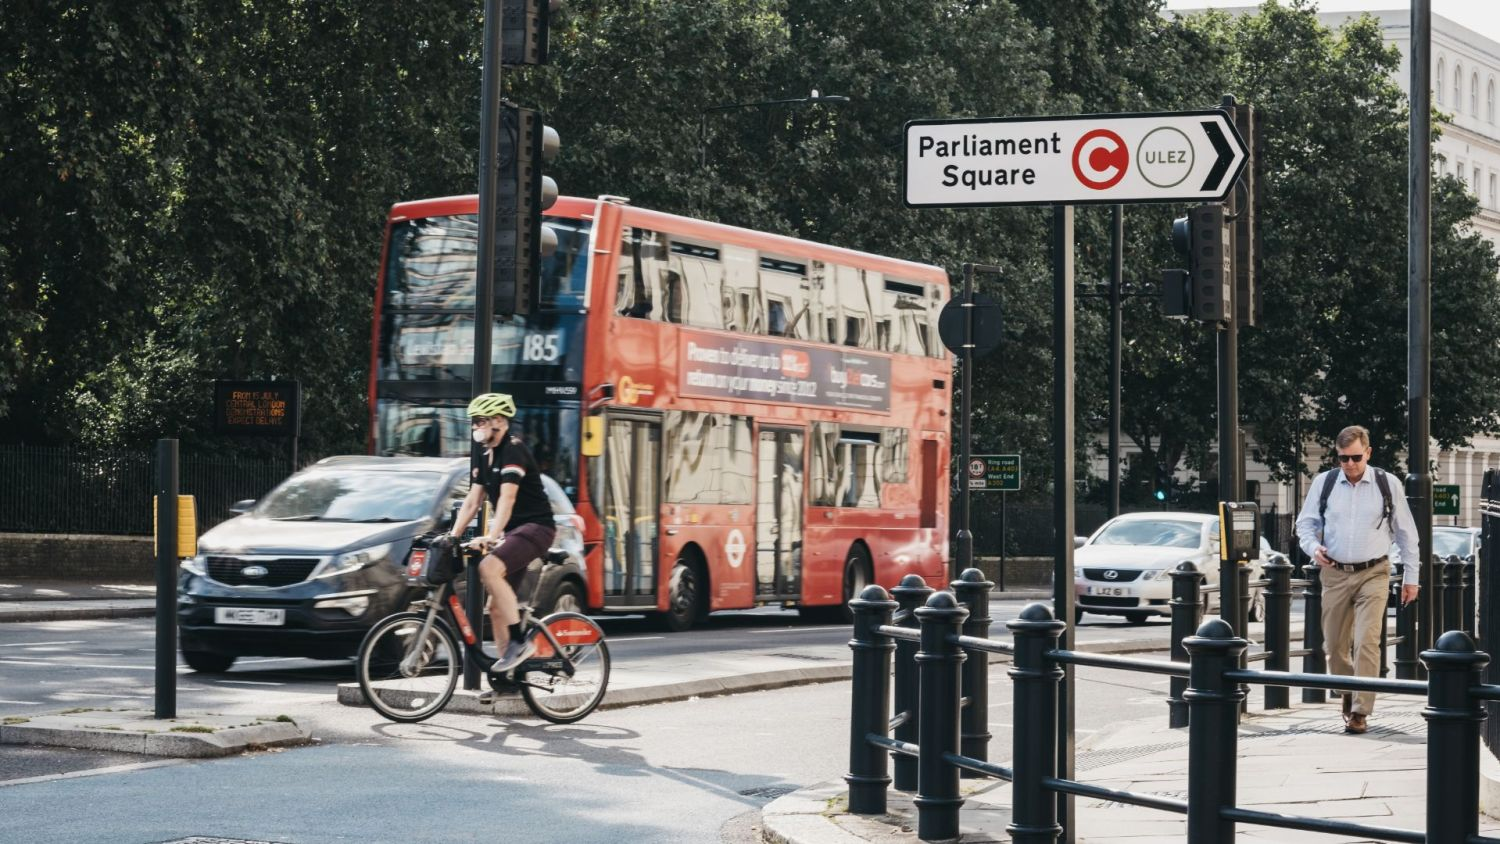 Central London 20mph speed limit